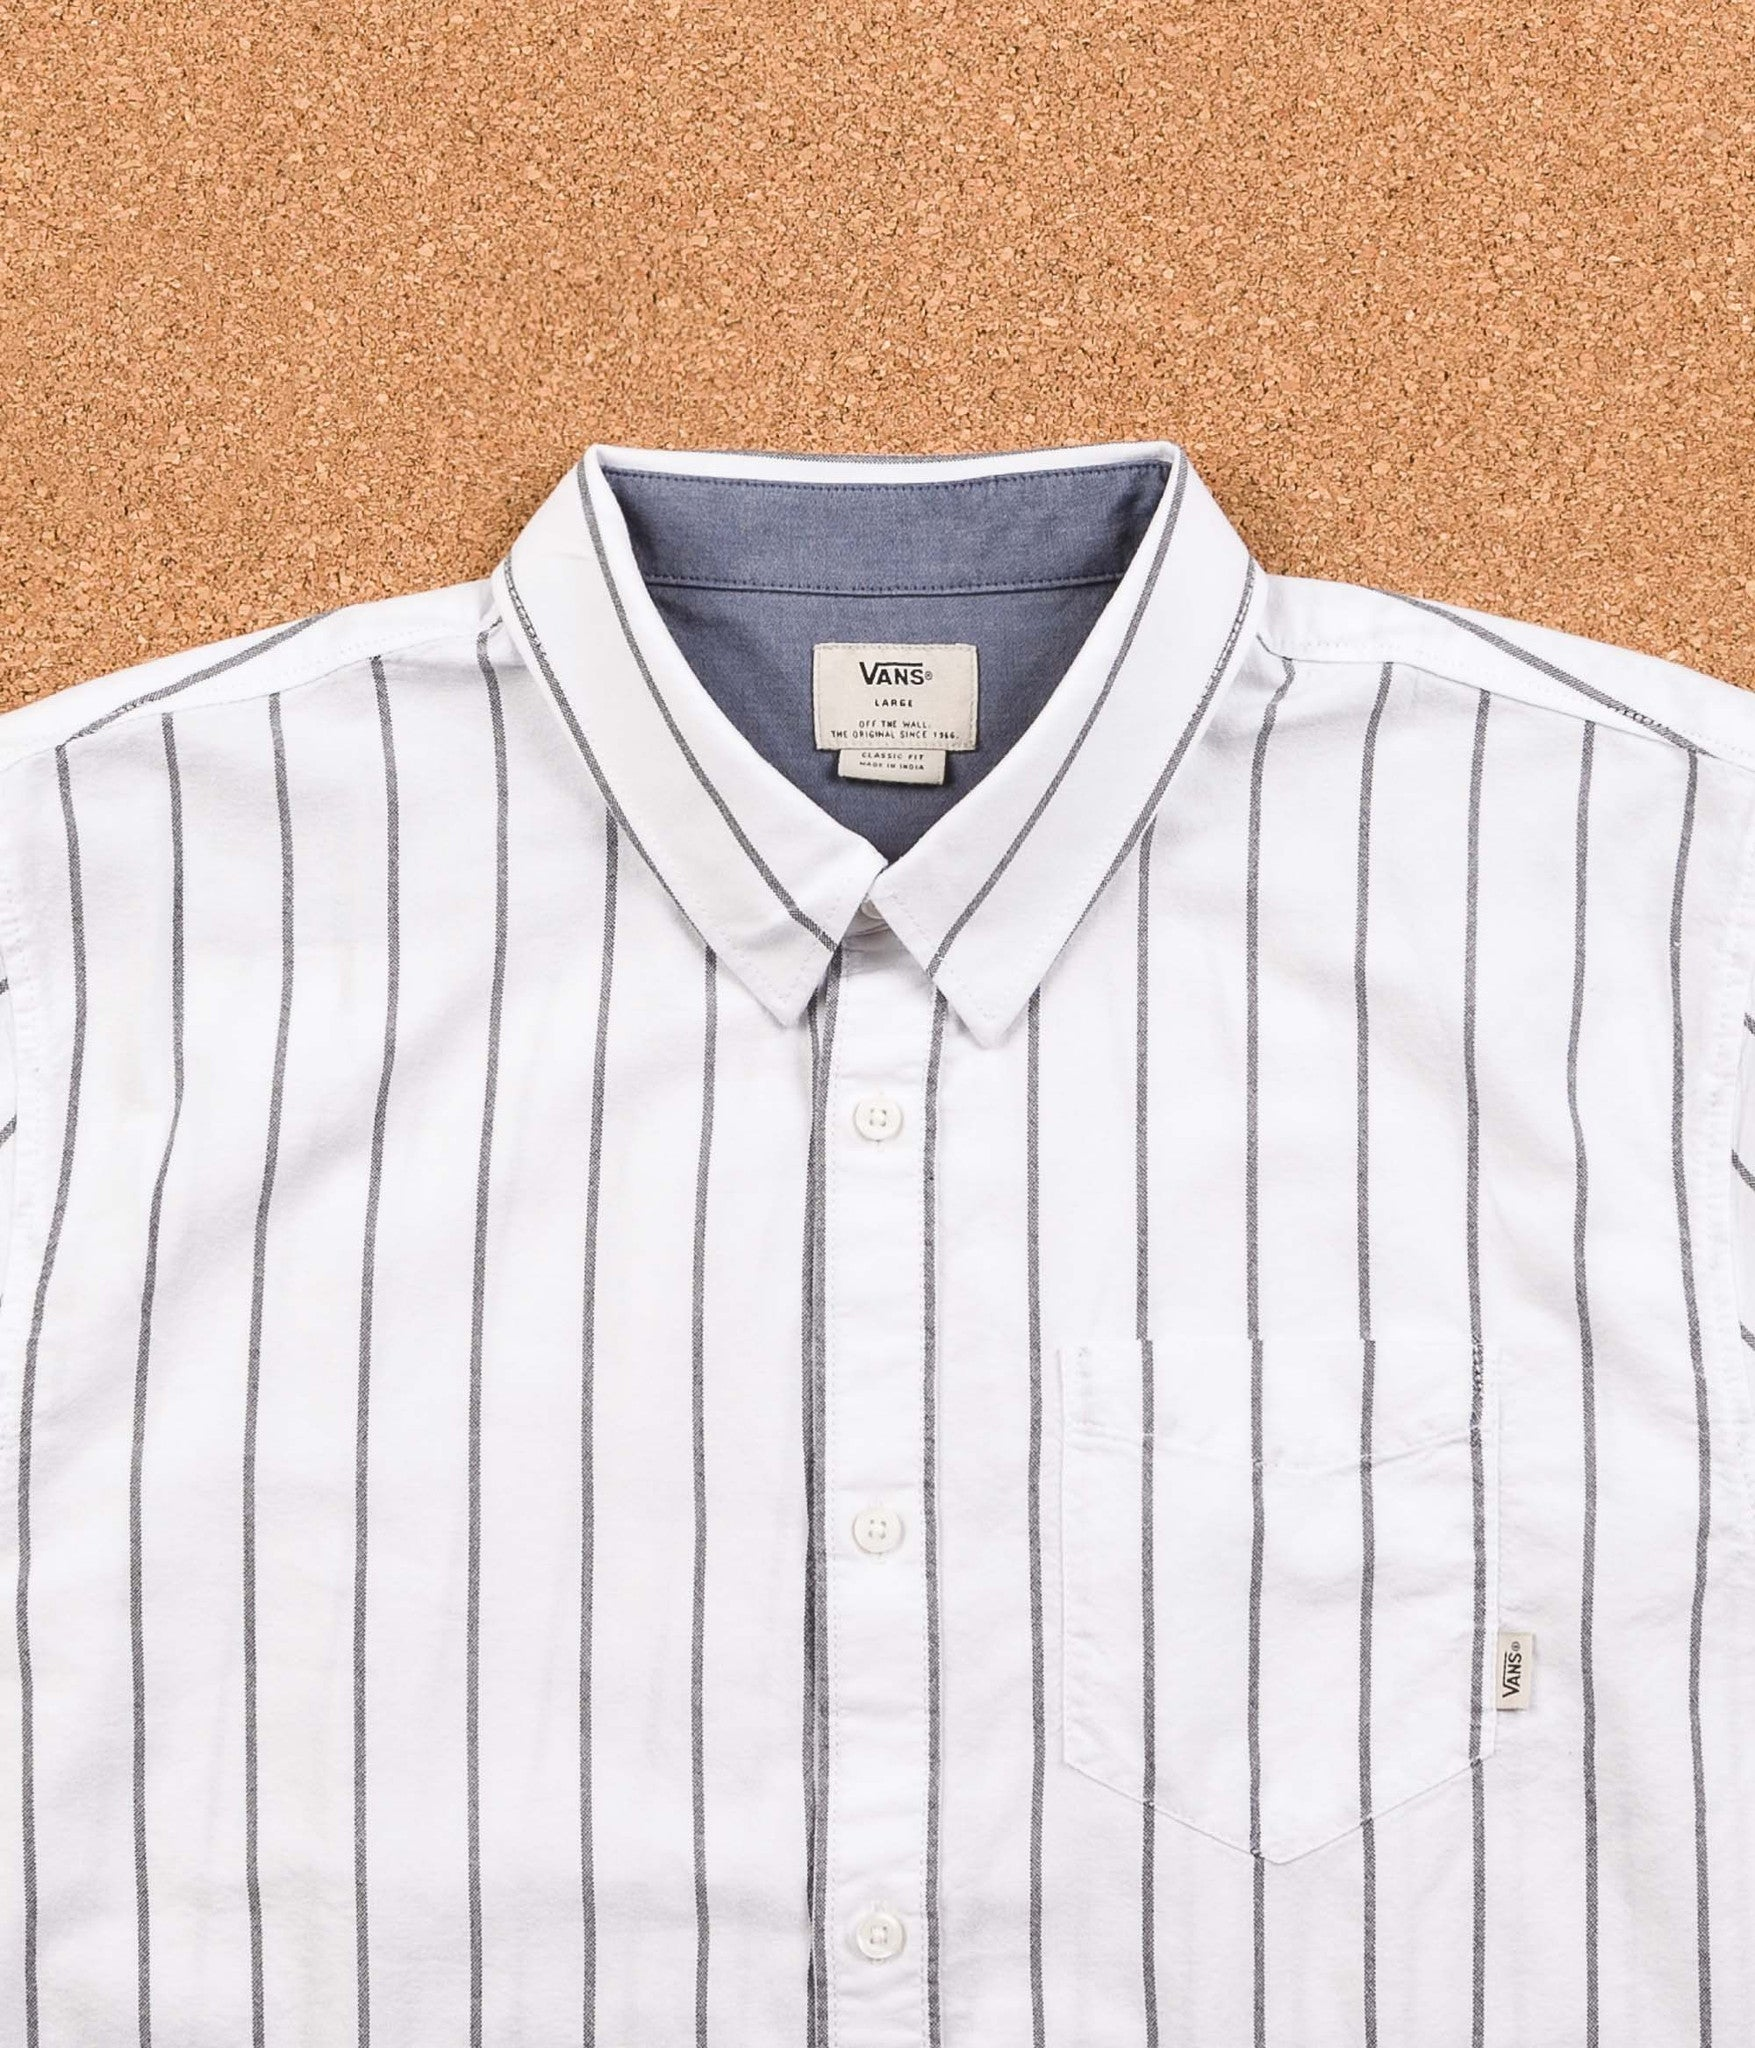 Vans Gilbert Crockett Stripe Shirt - White / Black